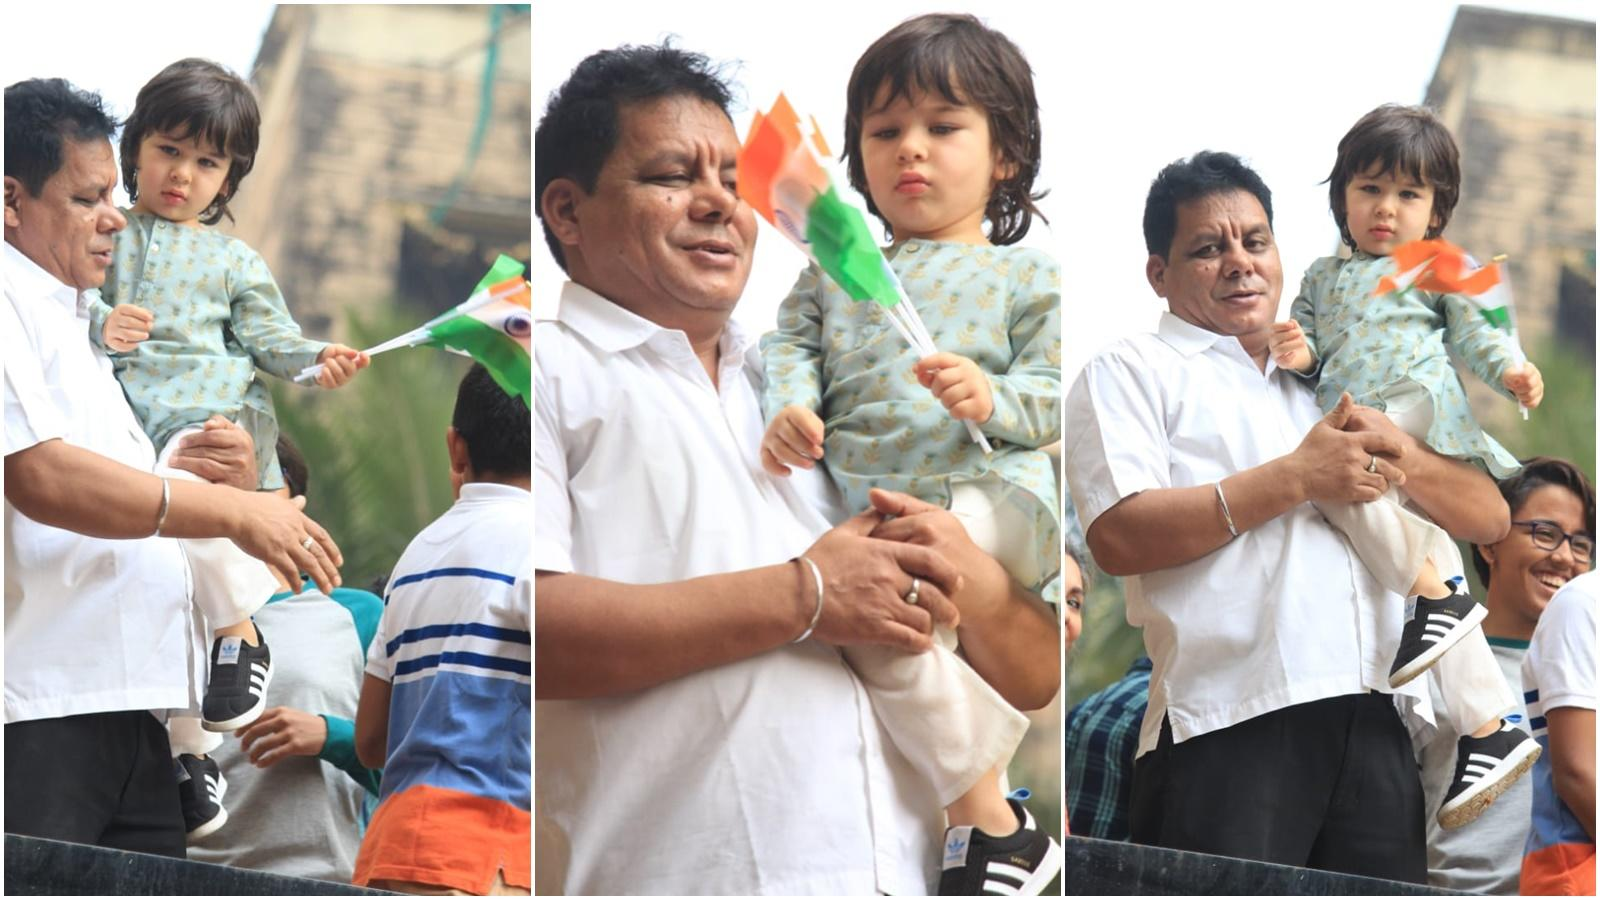 republic-day-2020-taimur-ali-khans-adorable-pictures-and-videos-celebrating-january-26-and-honouring-the-tricolor